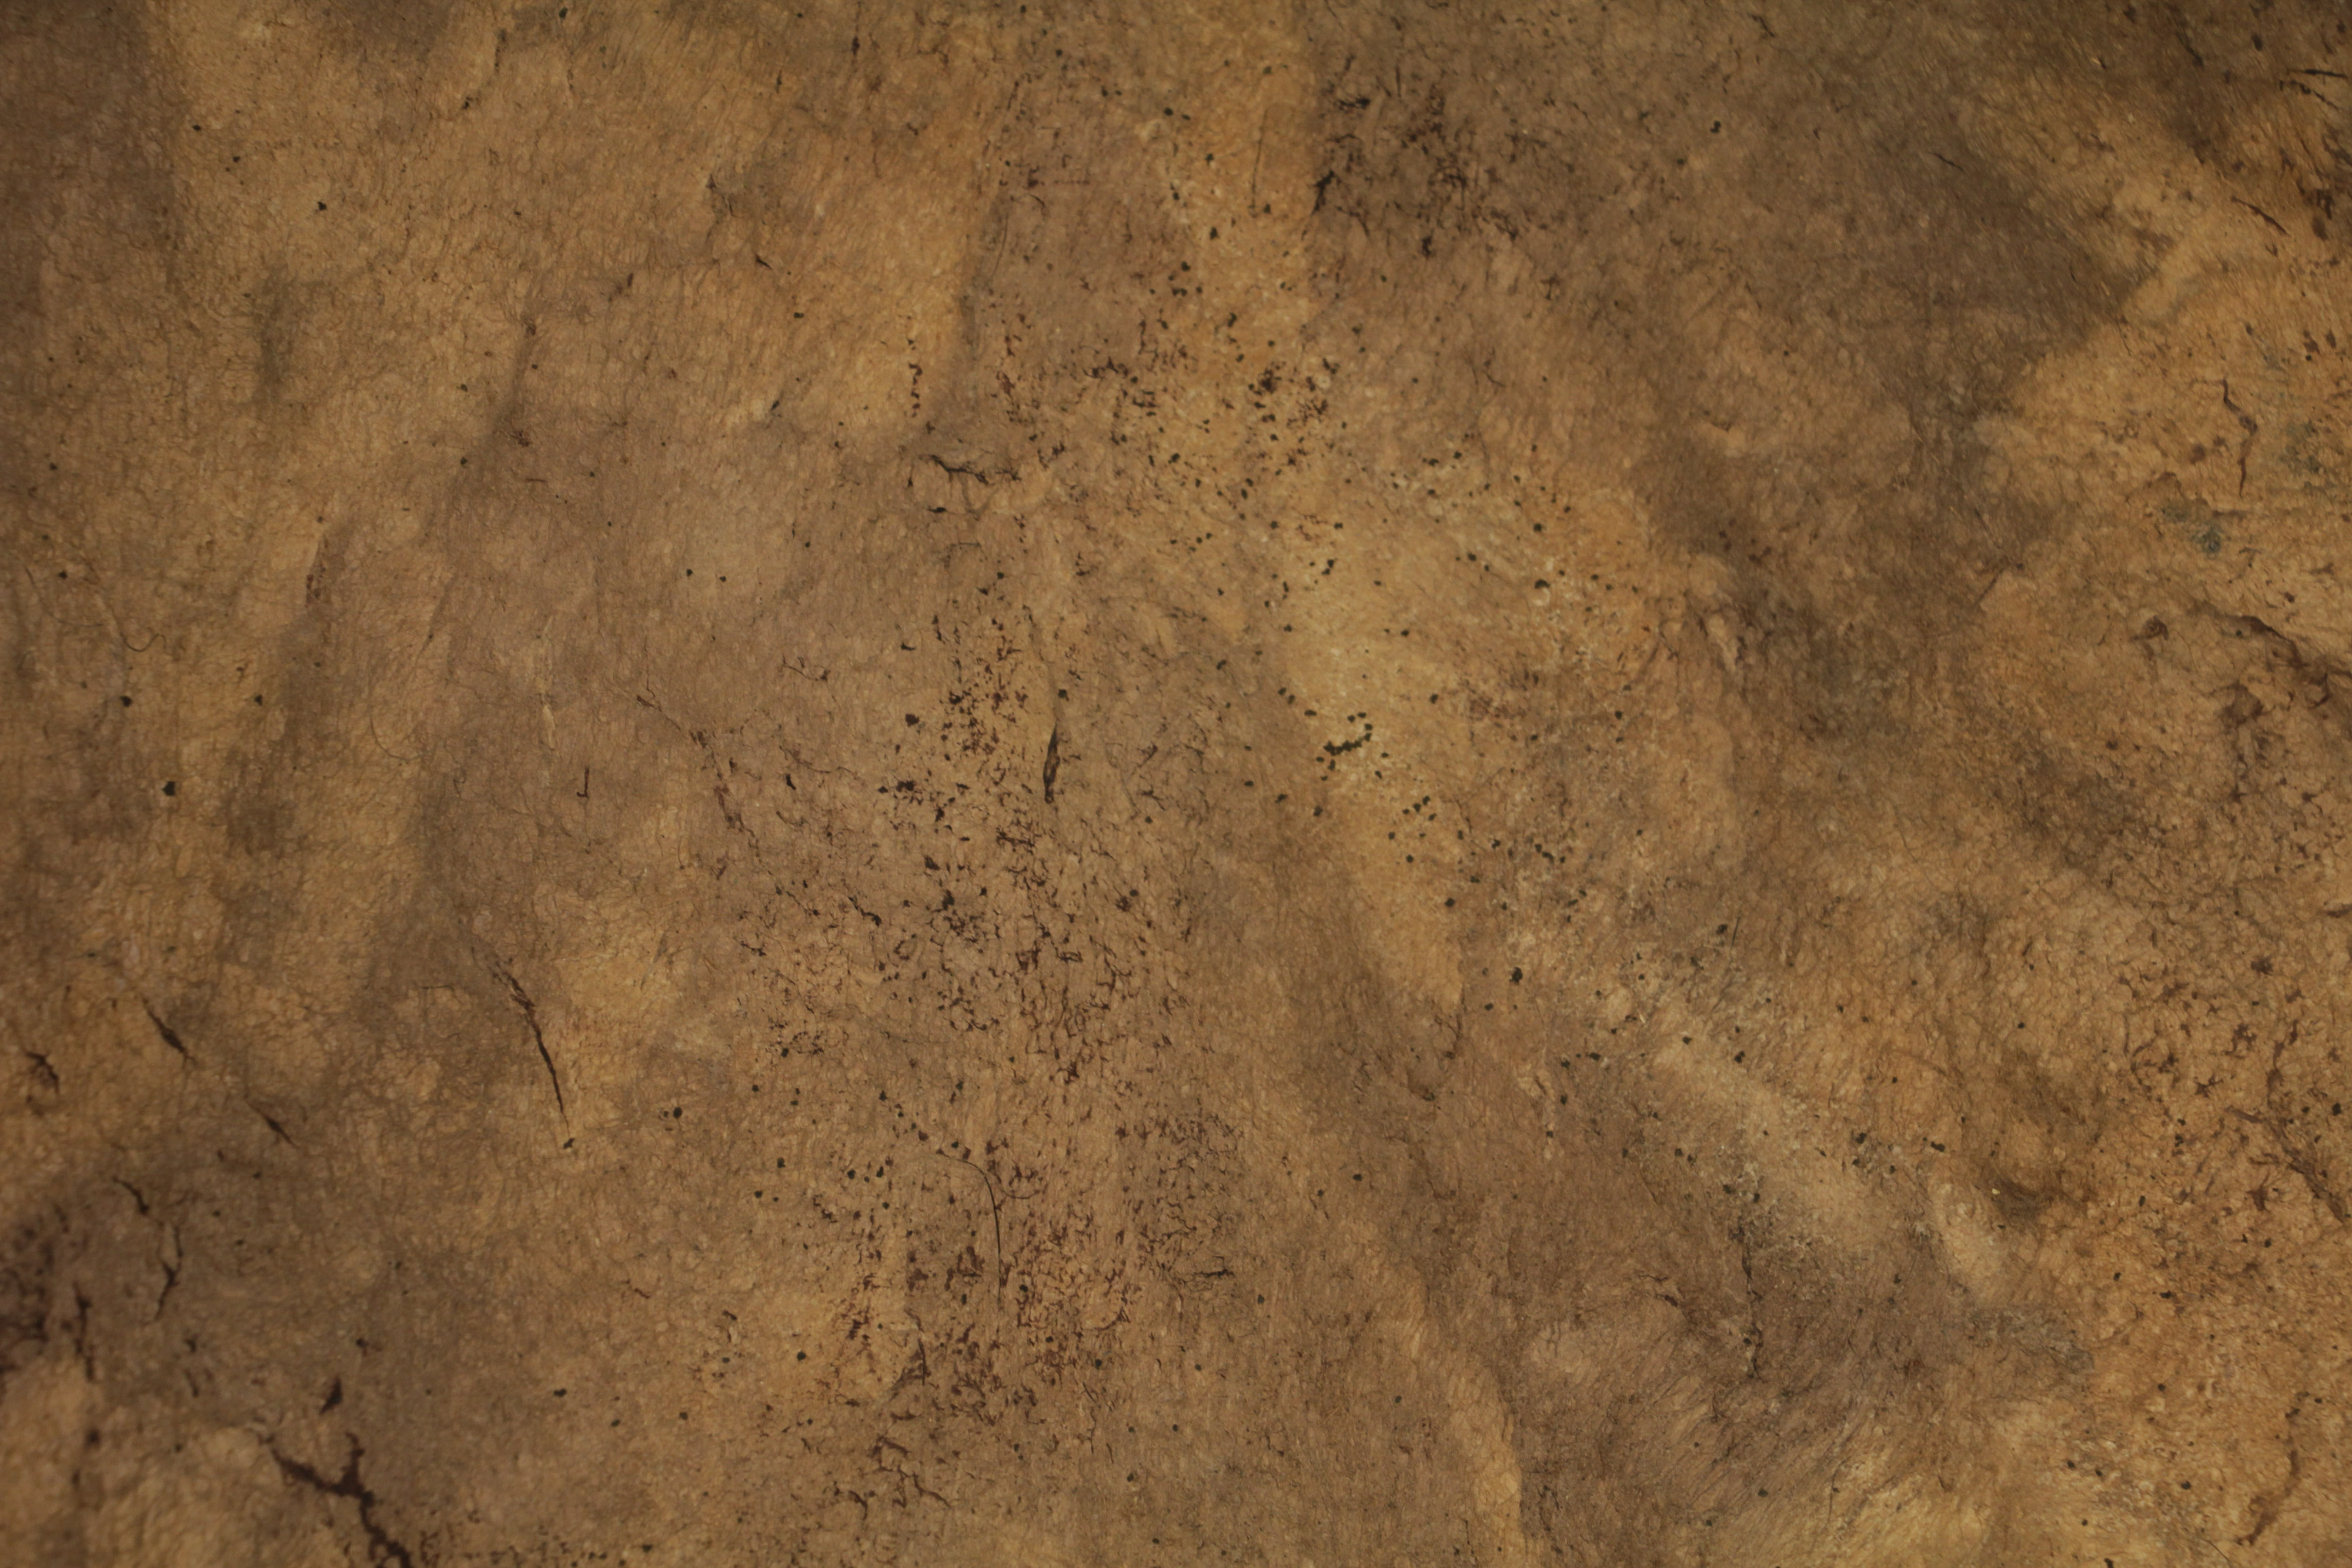 Black Brick Wallpaper Leather Texture Spotted Rough Grunge Bound Journal Photo